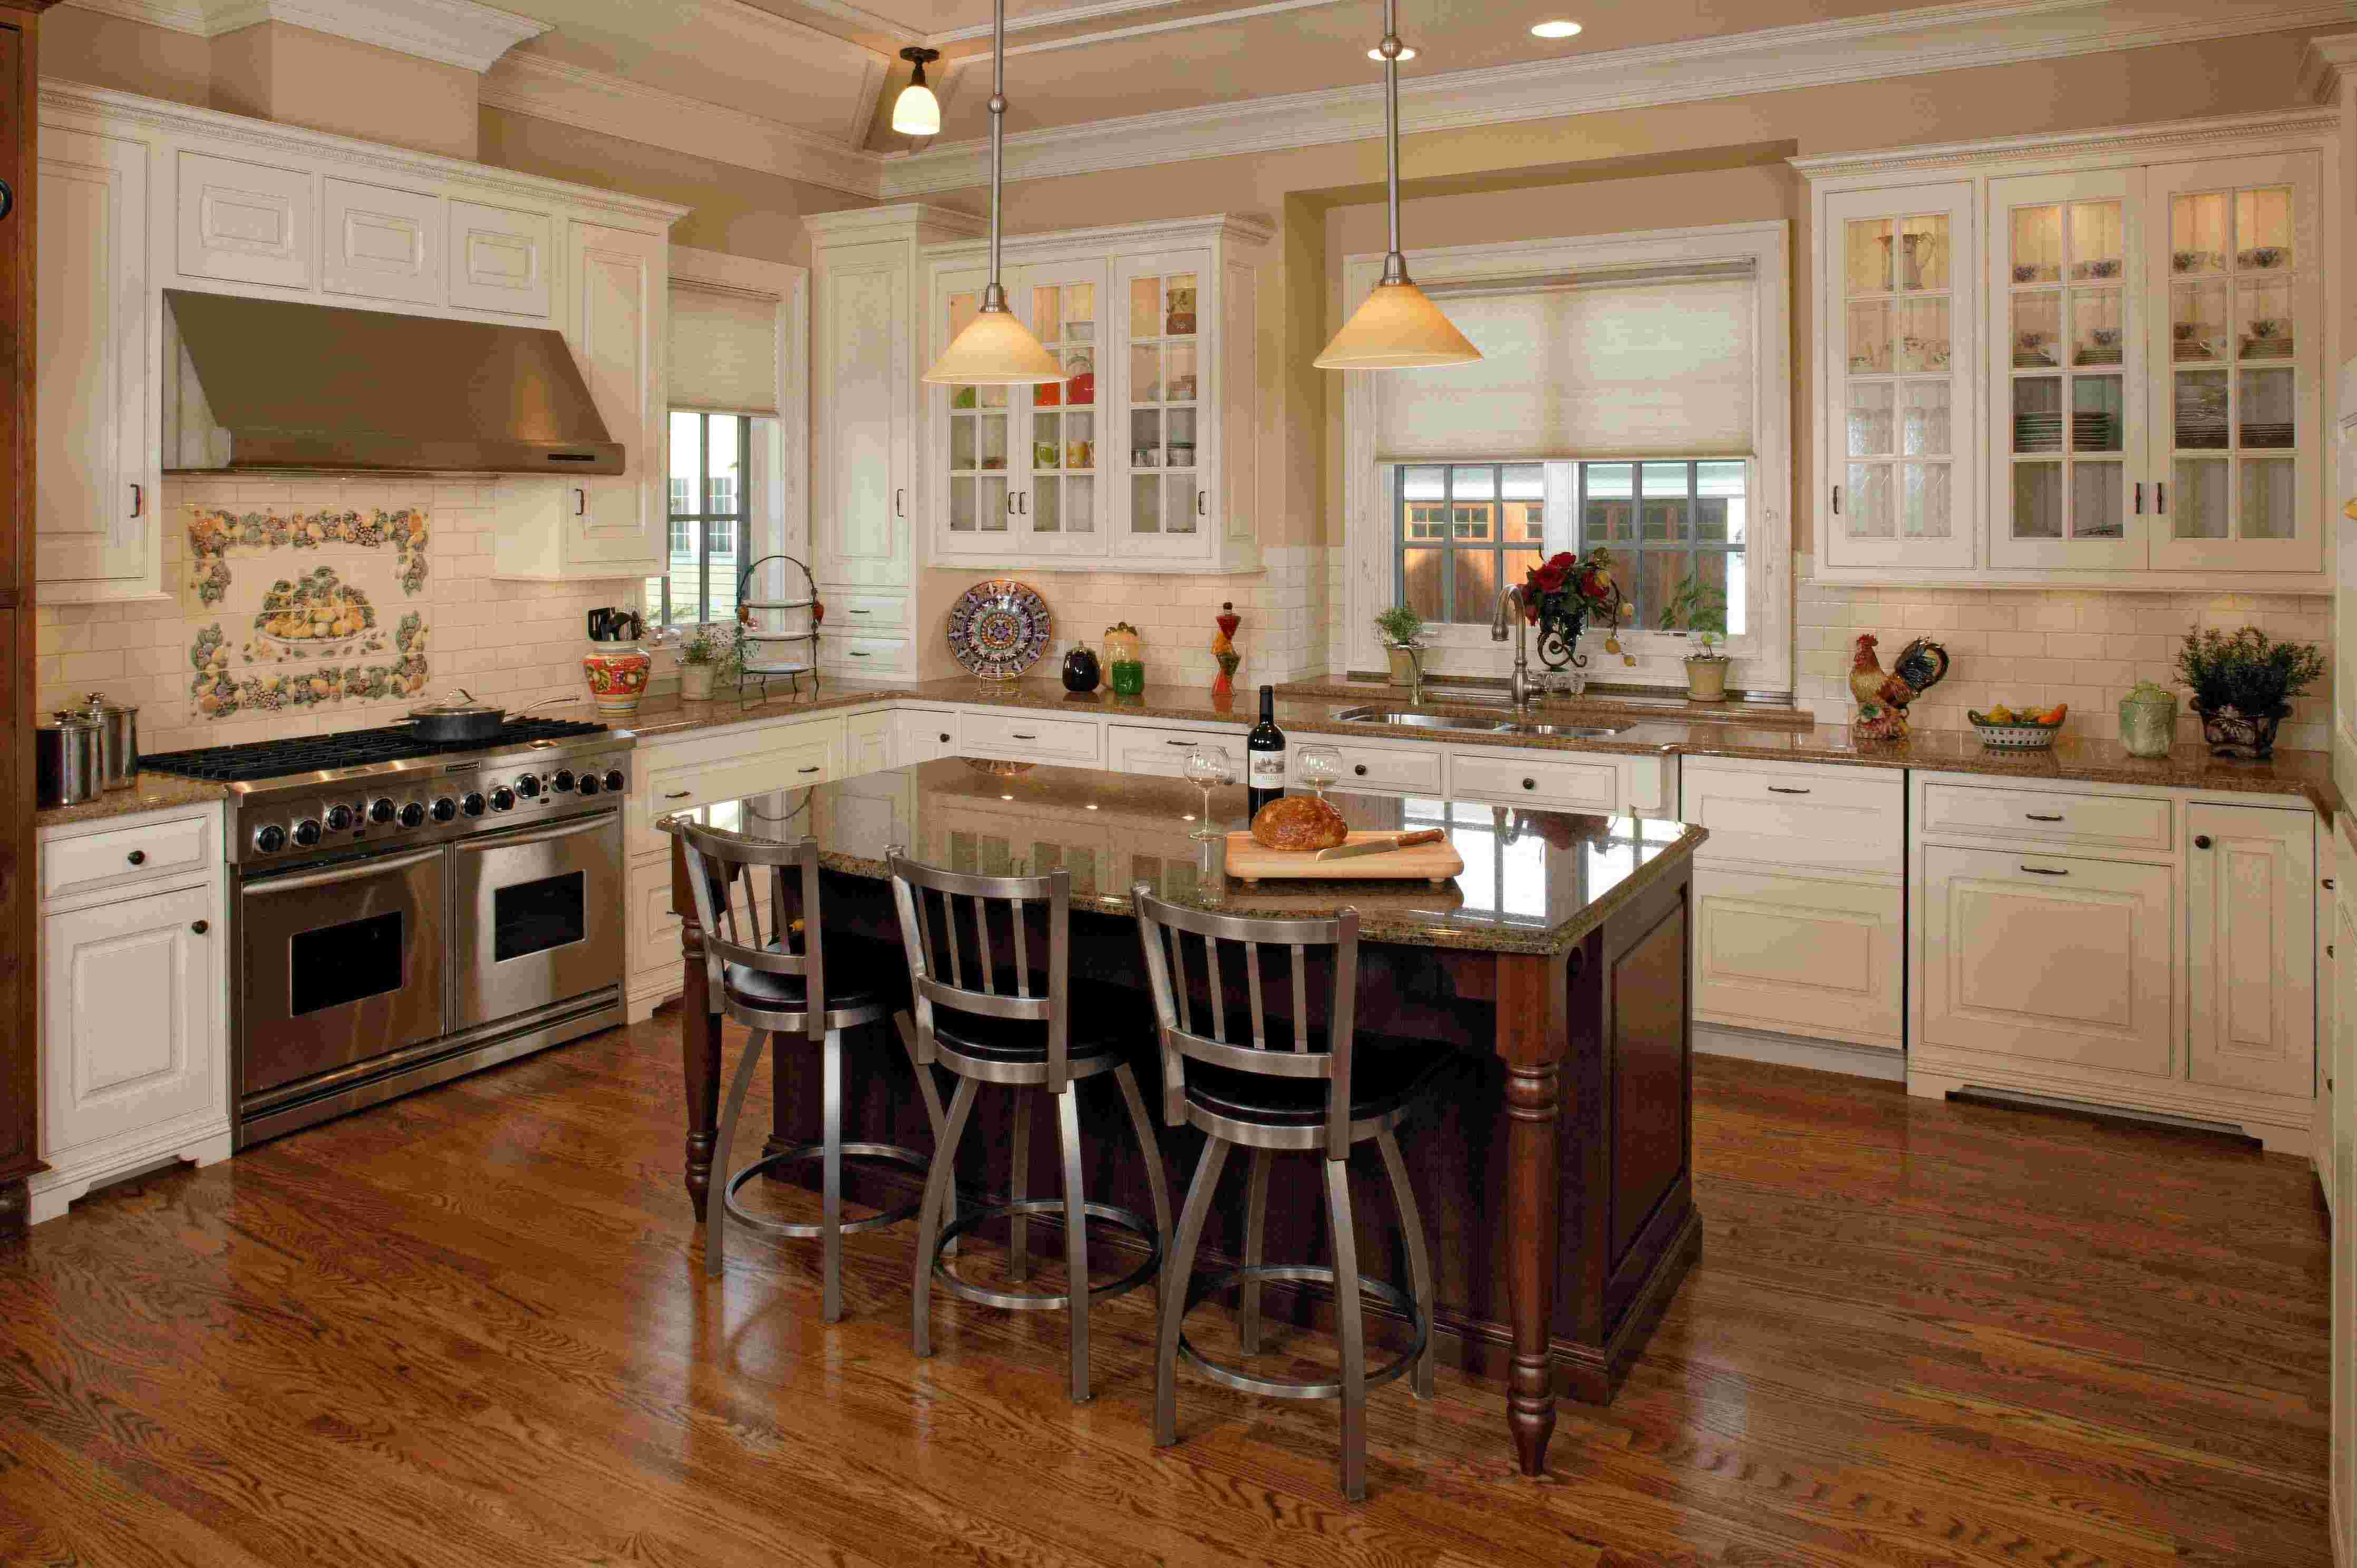 Kitchen table with benches photo - 1